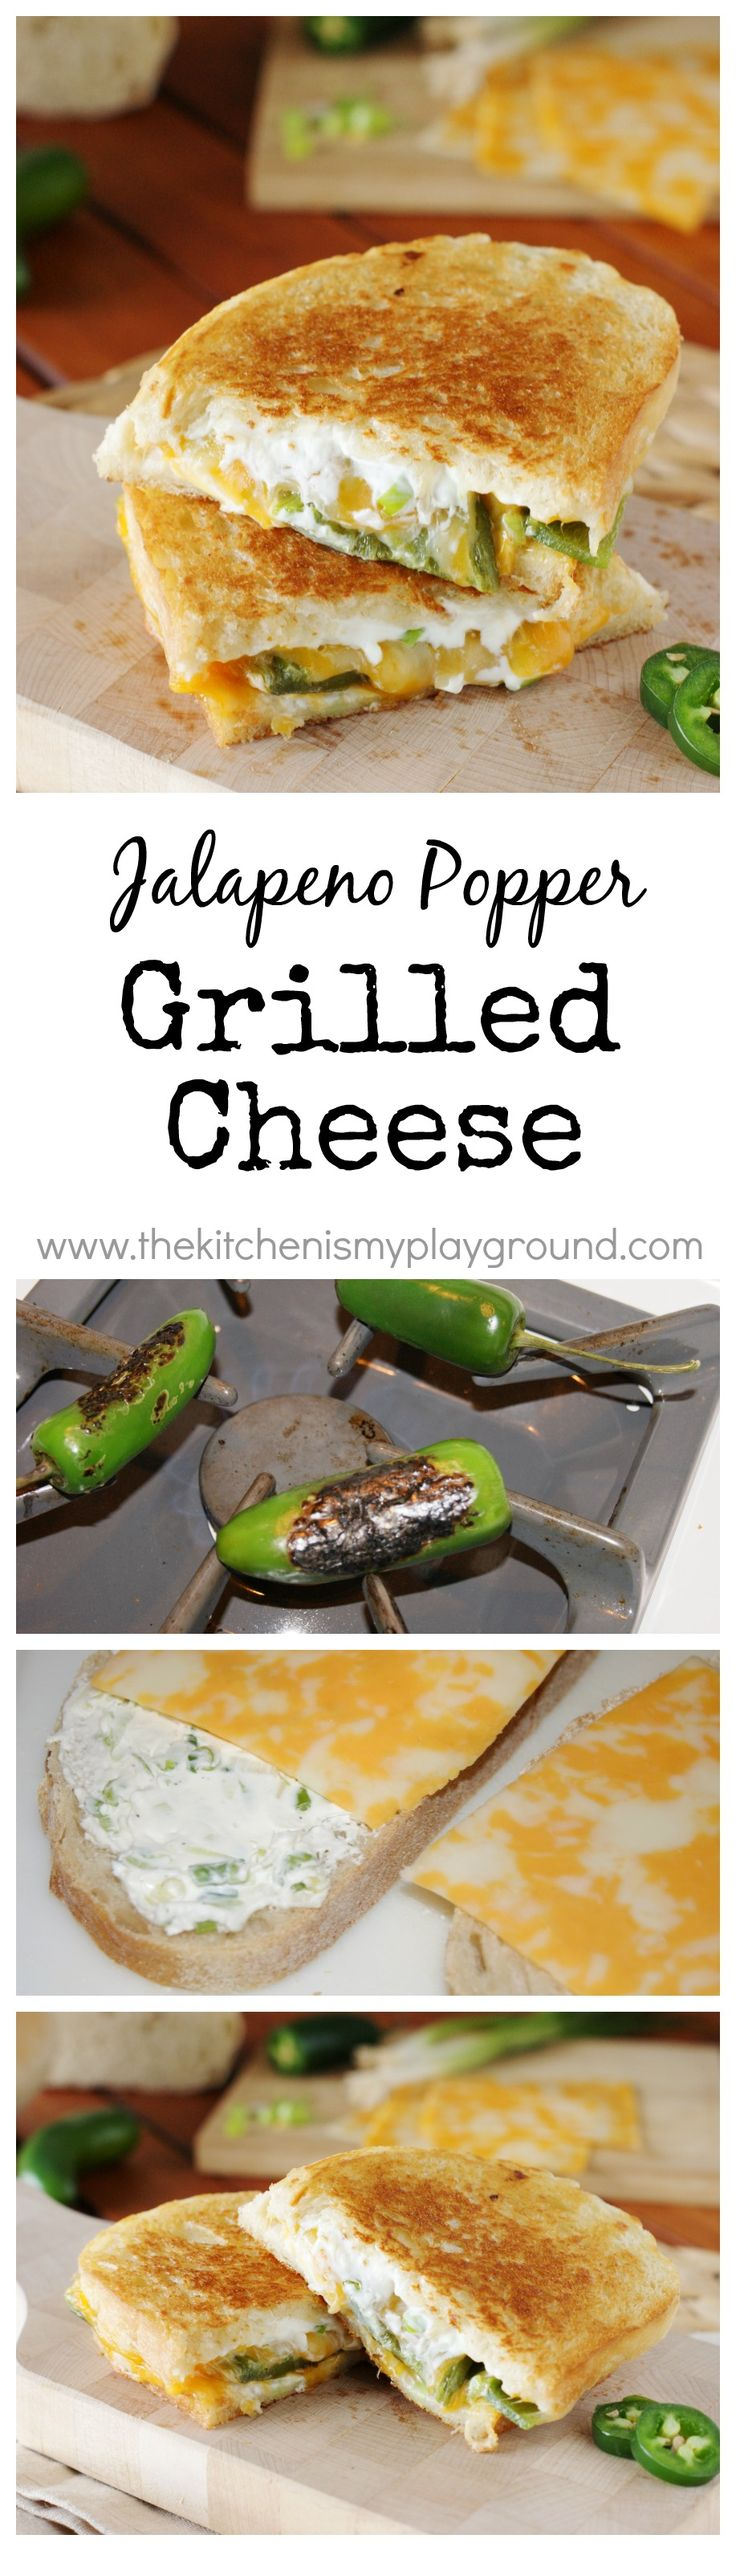 Jalapeno Popper Grilled Cheese ~ it will be your new favorite grilled cheese! #Grilledcheese #jalapenopoppers www.thekitchenismyplayground.com